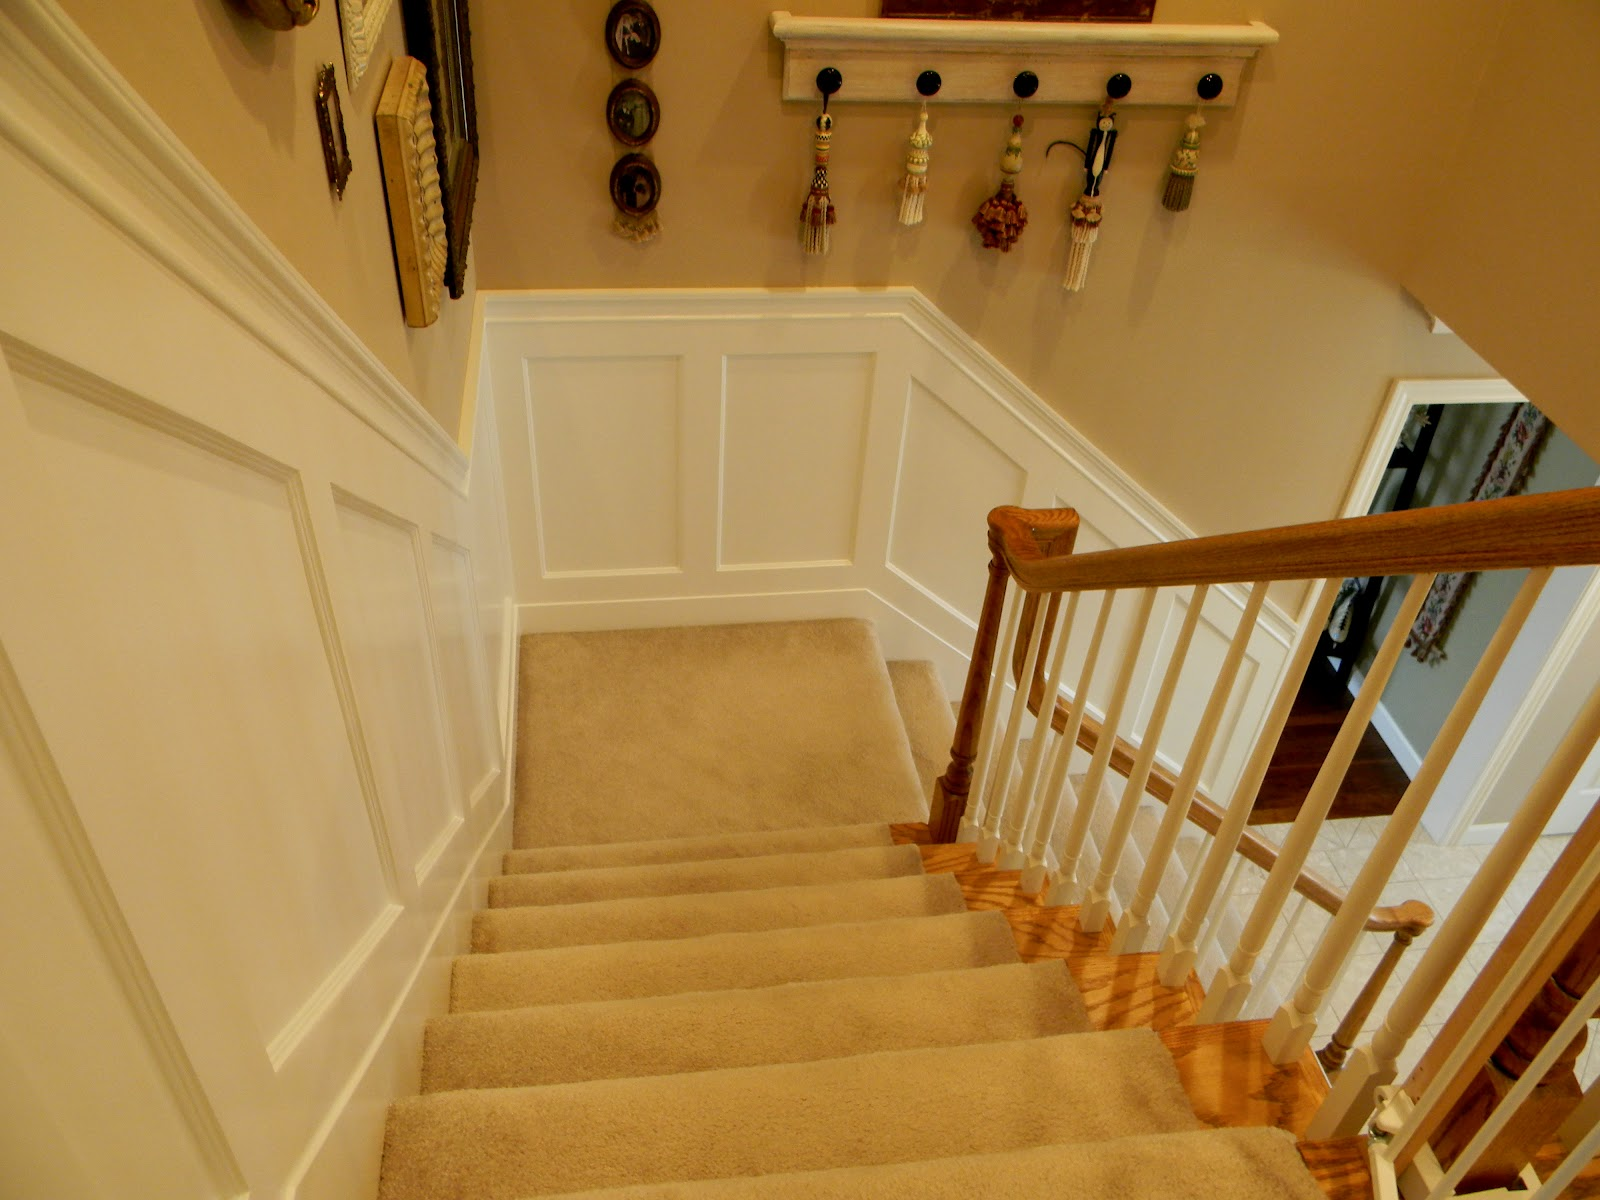 Are you or a loved one having trouble getting up the stairs?